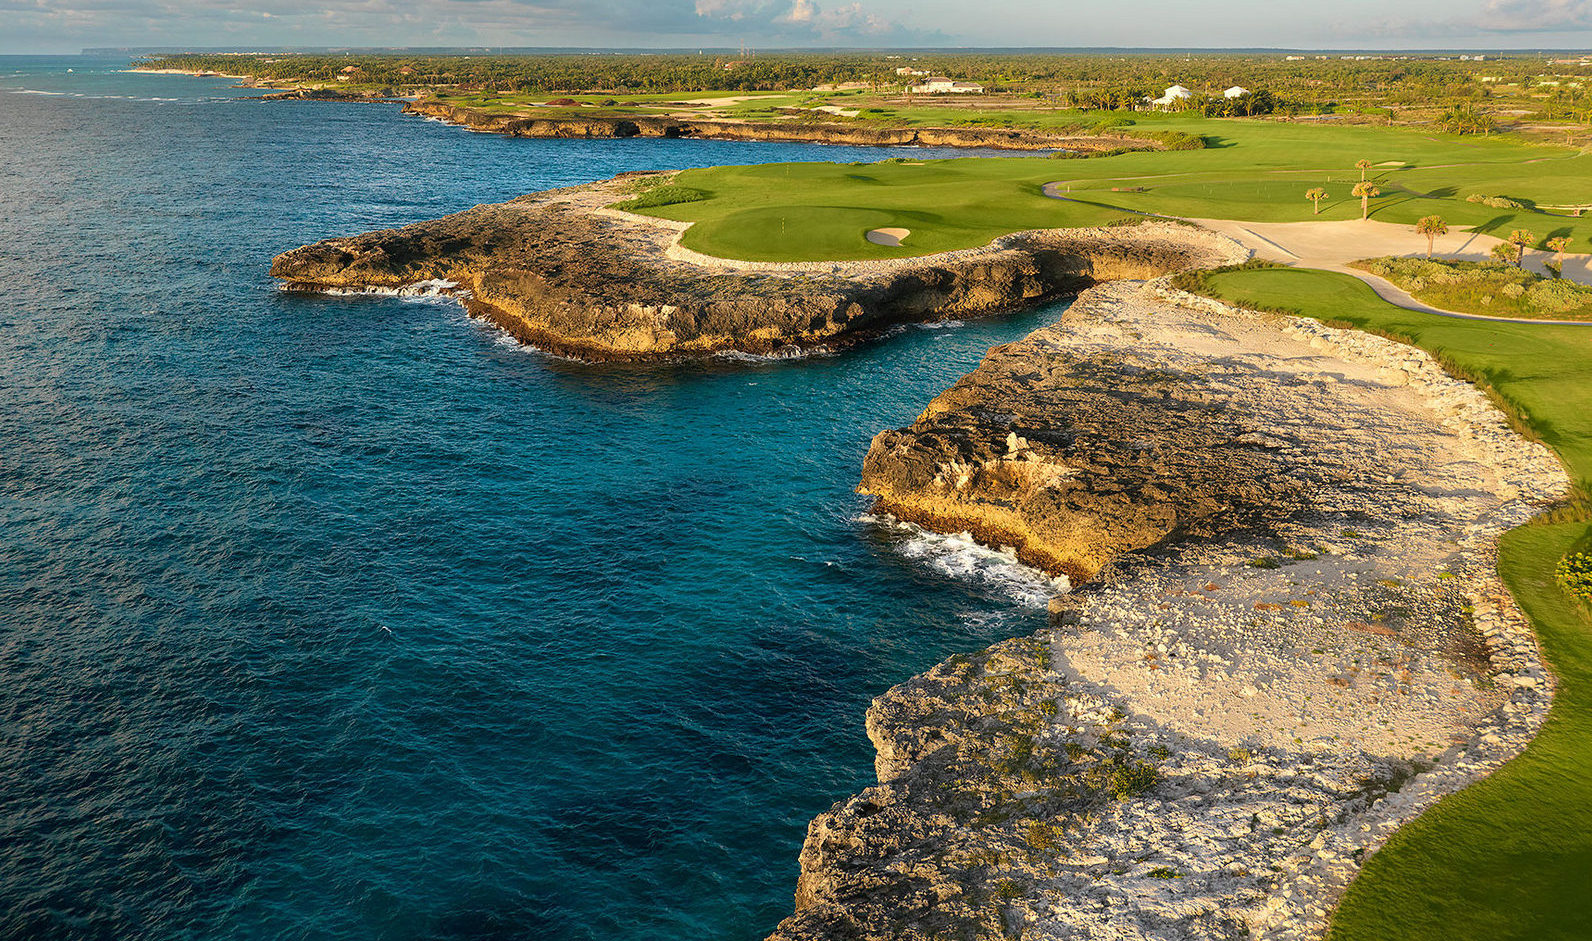 view of Corales golf course in Dominincan Republic